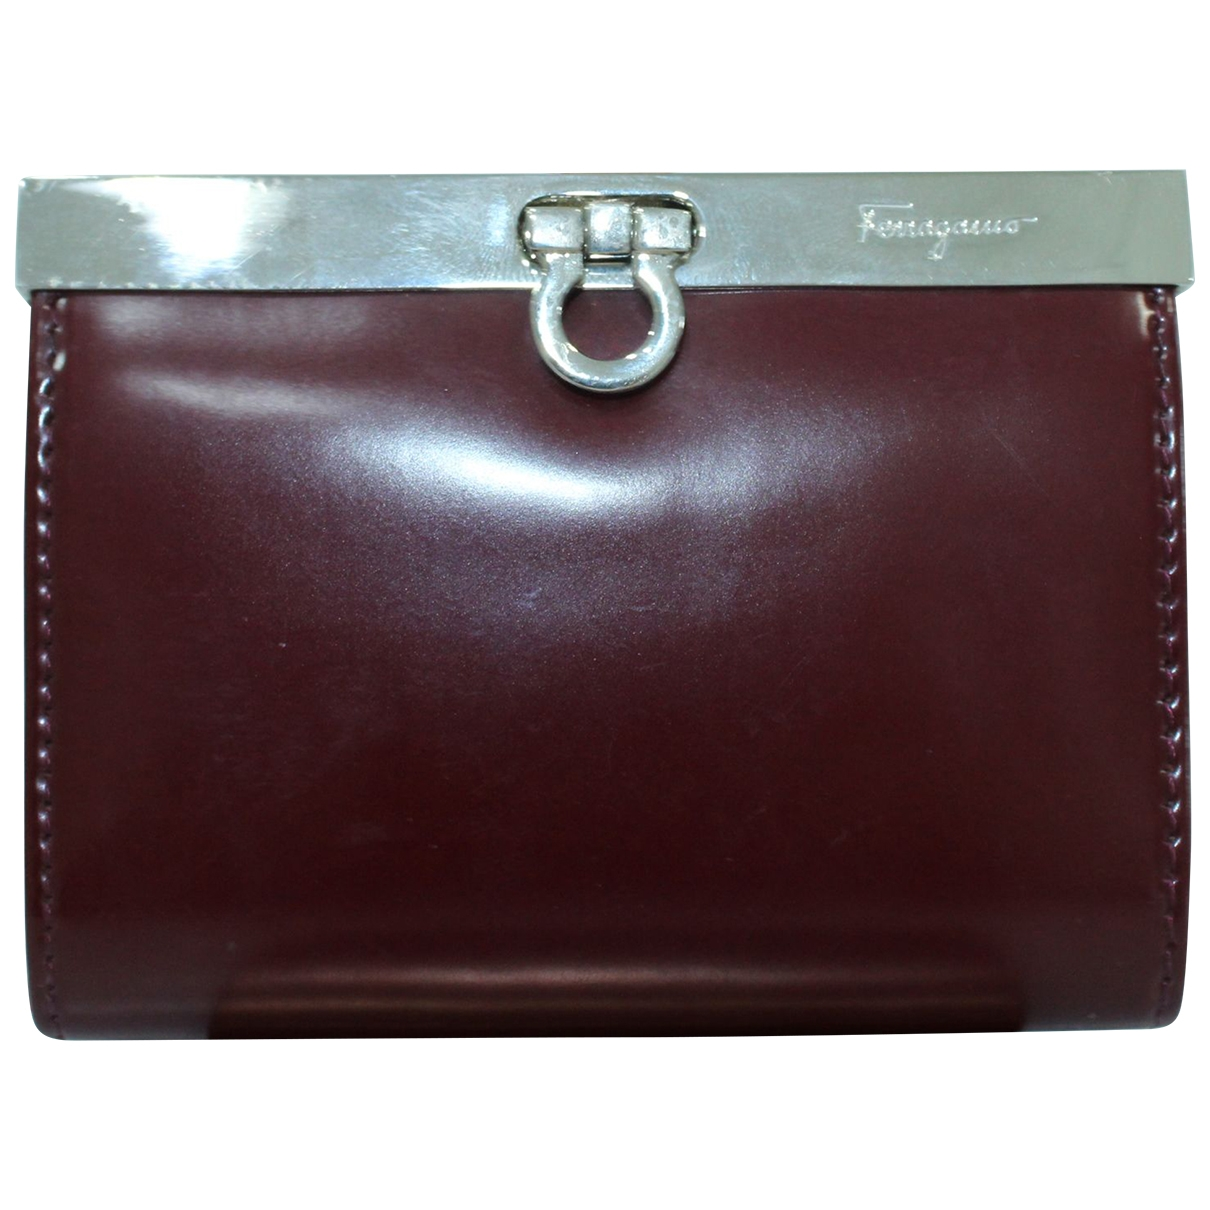 Salvatore Ferragamo \N Burgundy Leather wallet for Women \N